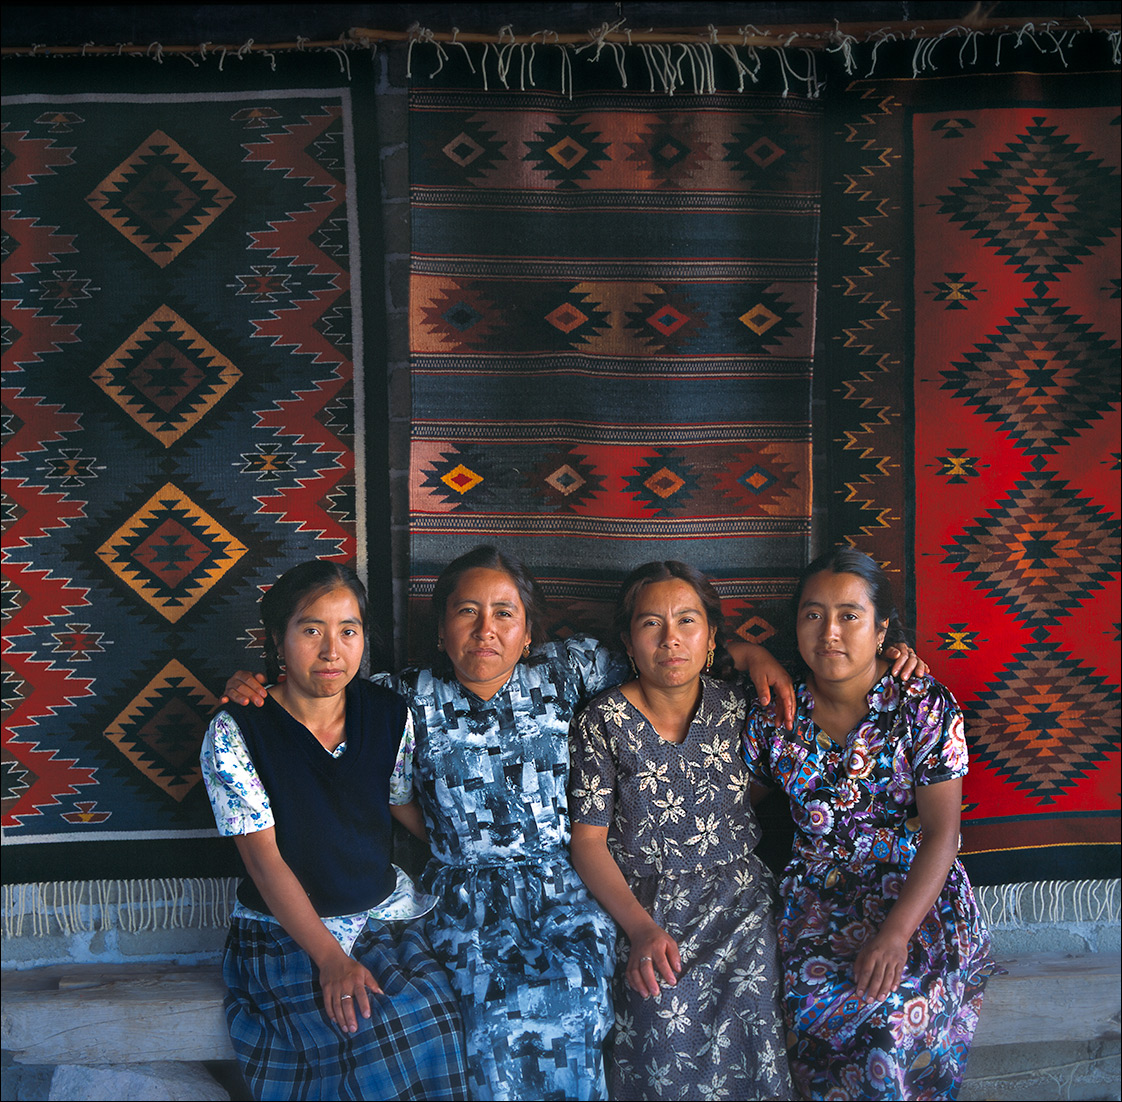 Vincente sisters, Zapotec Women of Oaxaca